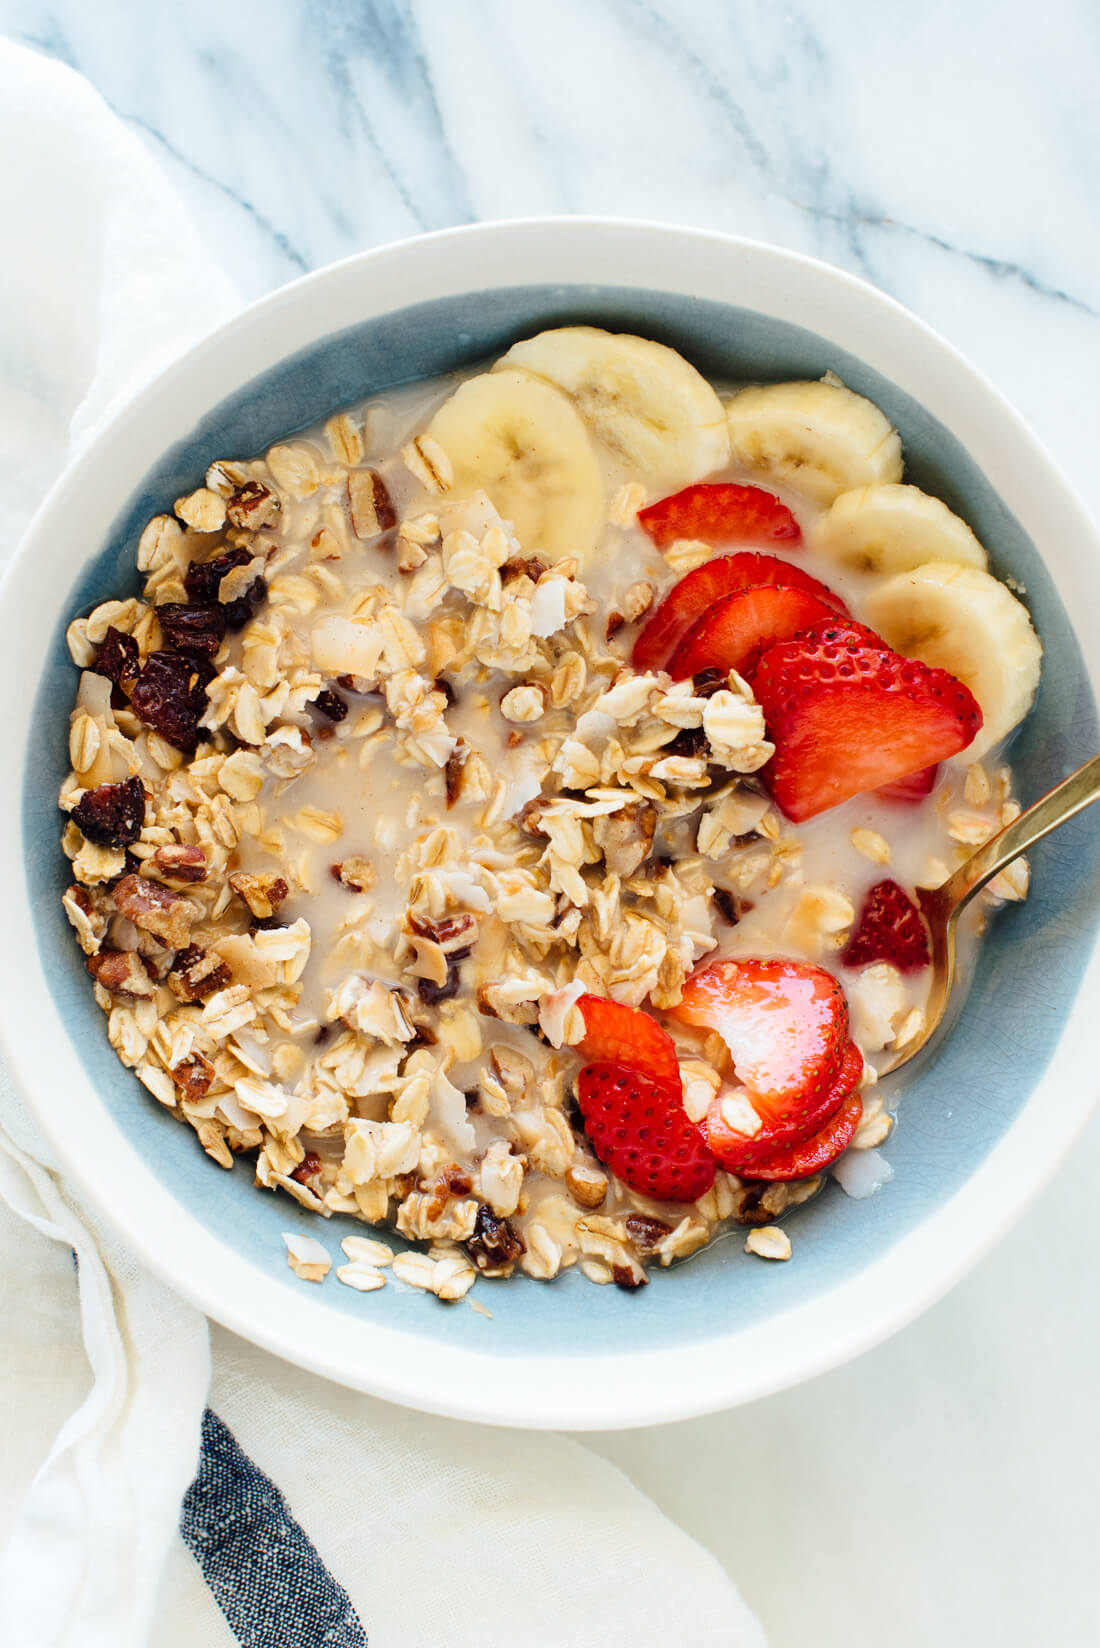 Make your own healthy homemade cereal! This cherry pecan muesli is full of whole grains and nutritious pecans. cookieandkate.com